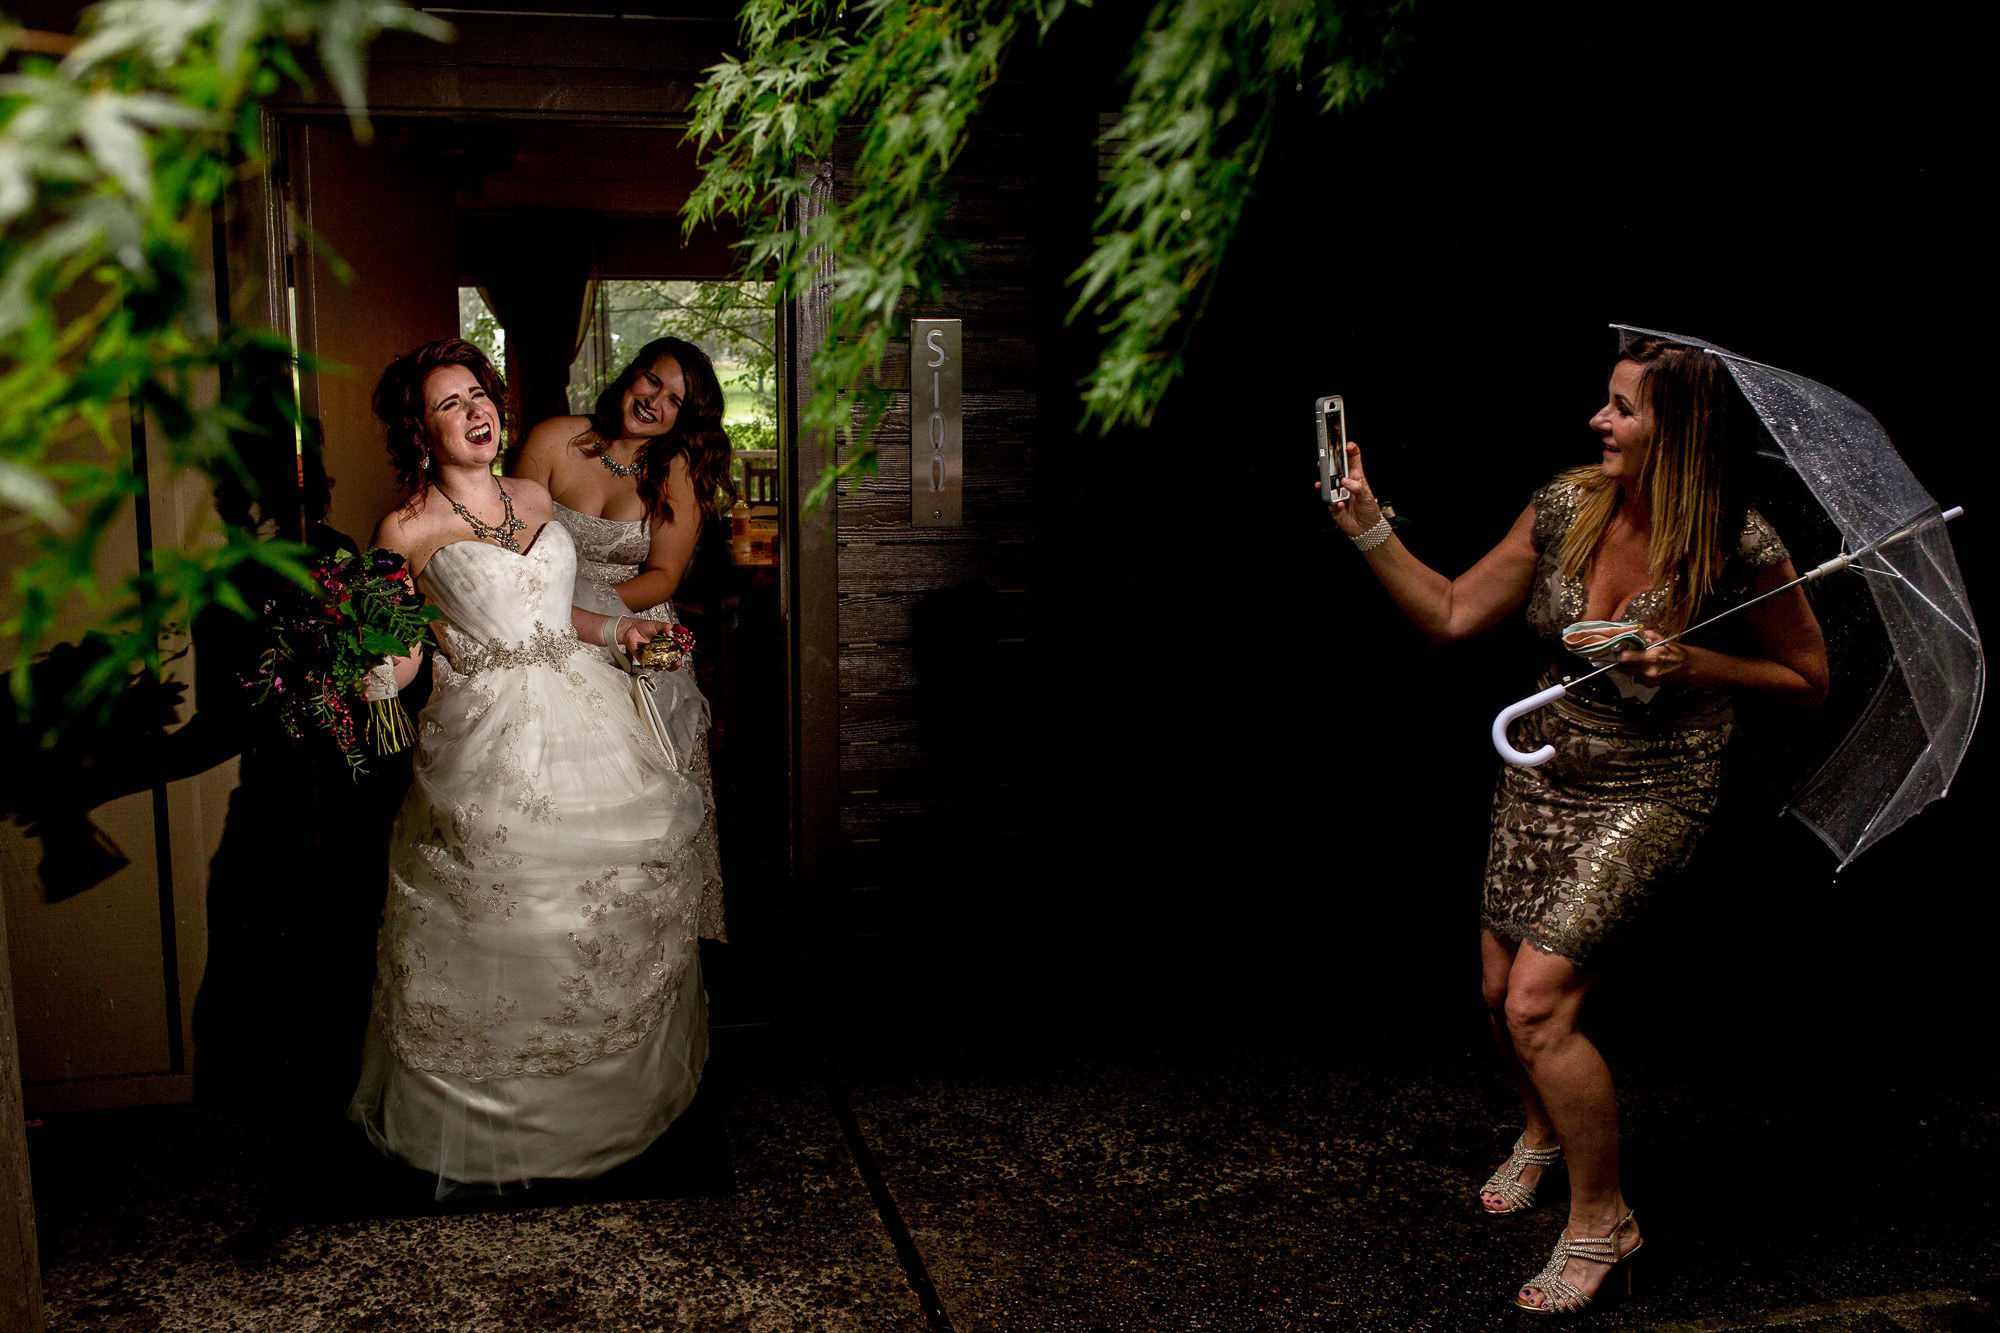 Bride shows off dress photo by JOS Studios : Jos and Tree Woodsmith